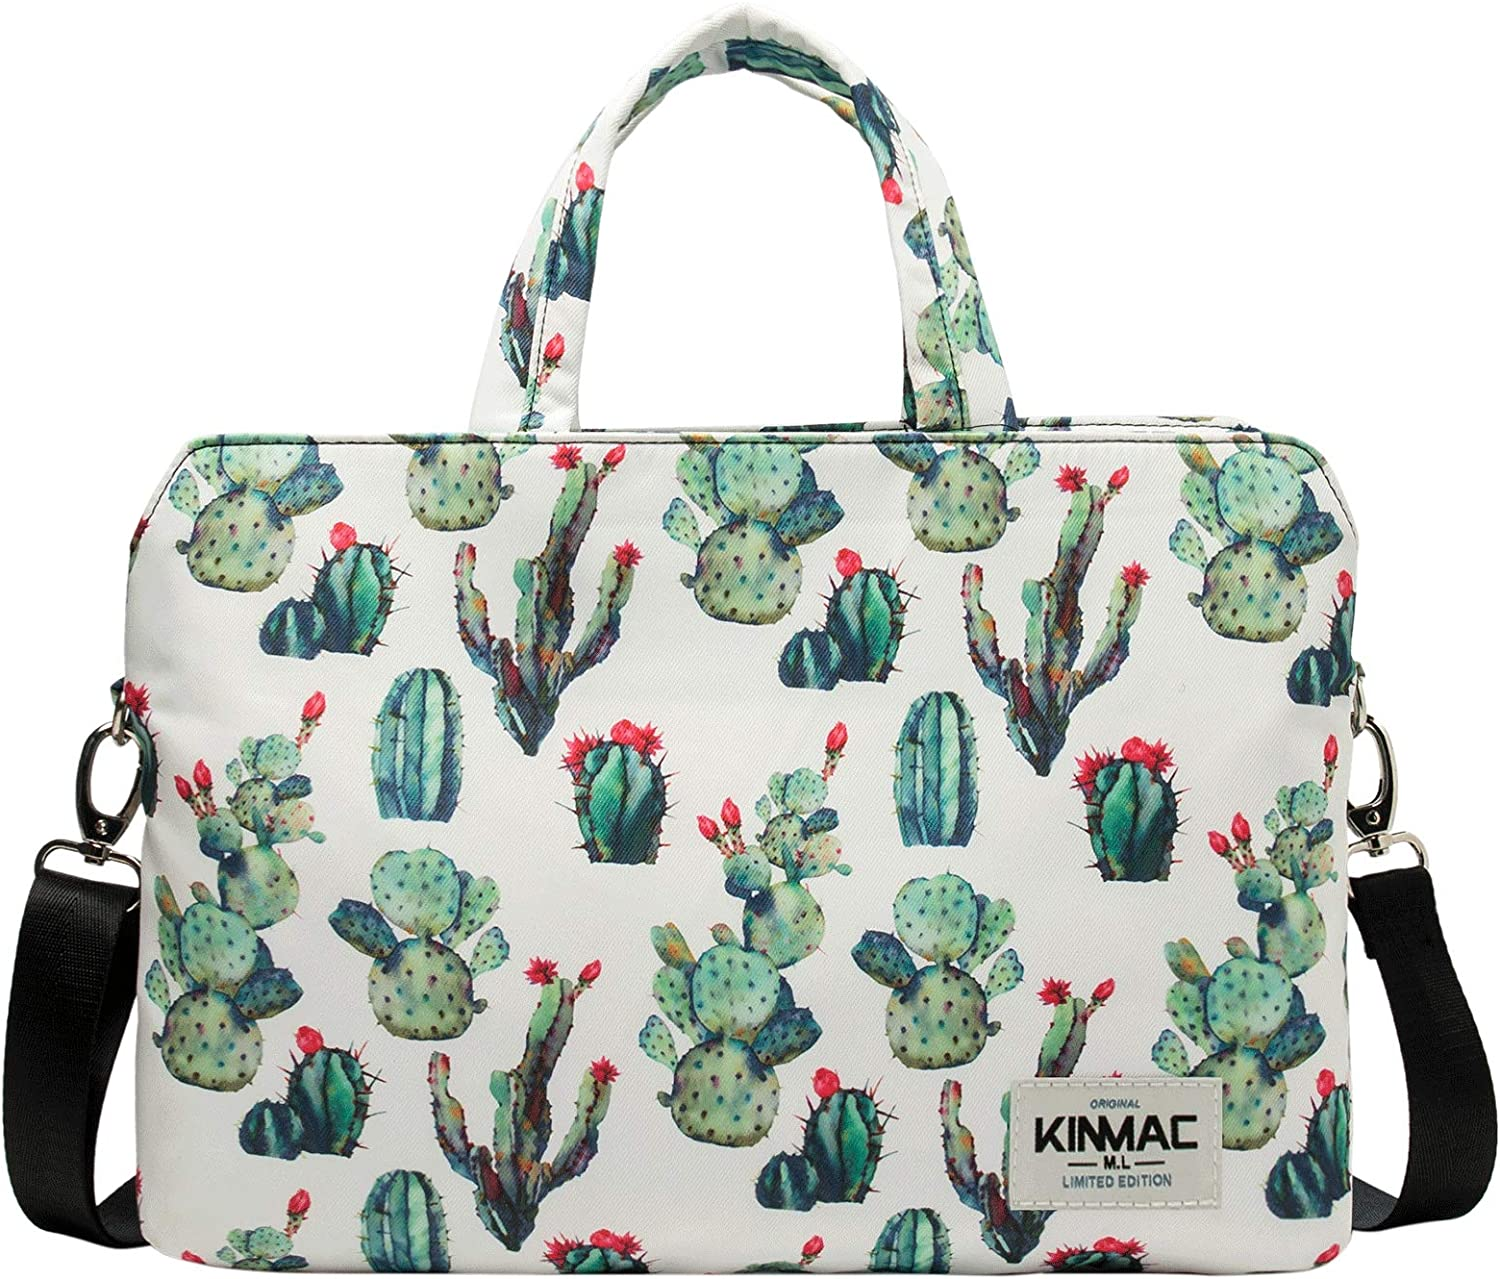 Kinmac 360 Degree Protective Water Resistant Laptop Shoulder Messenger Sleeve Case Bag with All-Directional High Rebound Cushion(14 inch, Cactus)